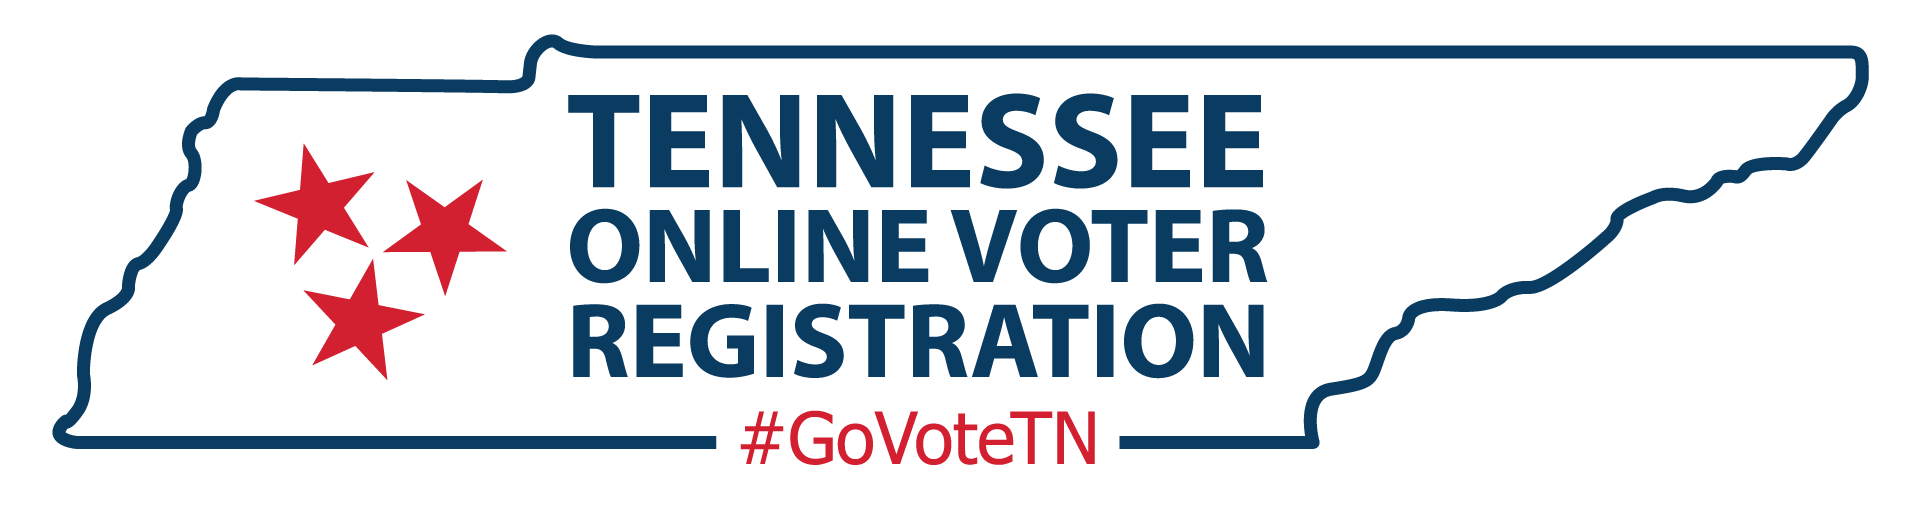 outline of state of TN with words, Tennessee online voter registration #GoVoteTN